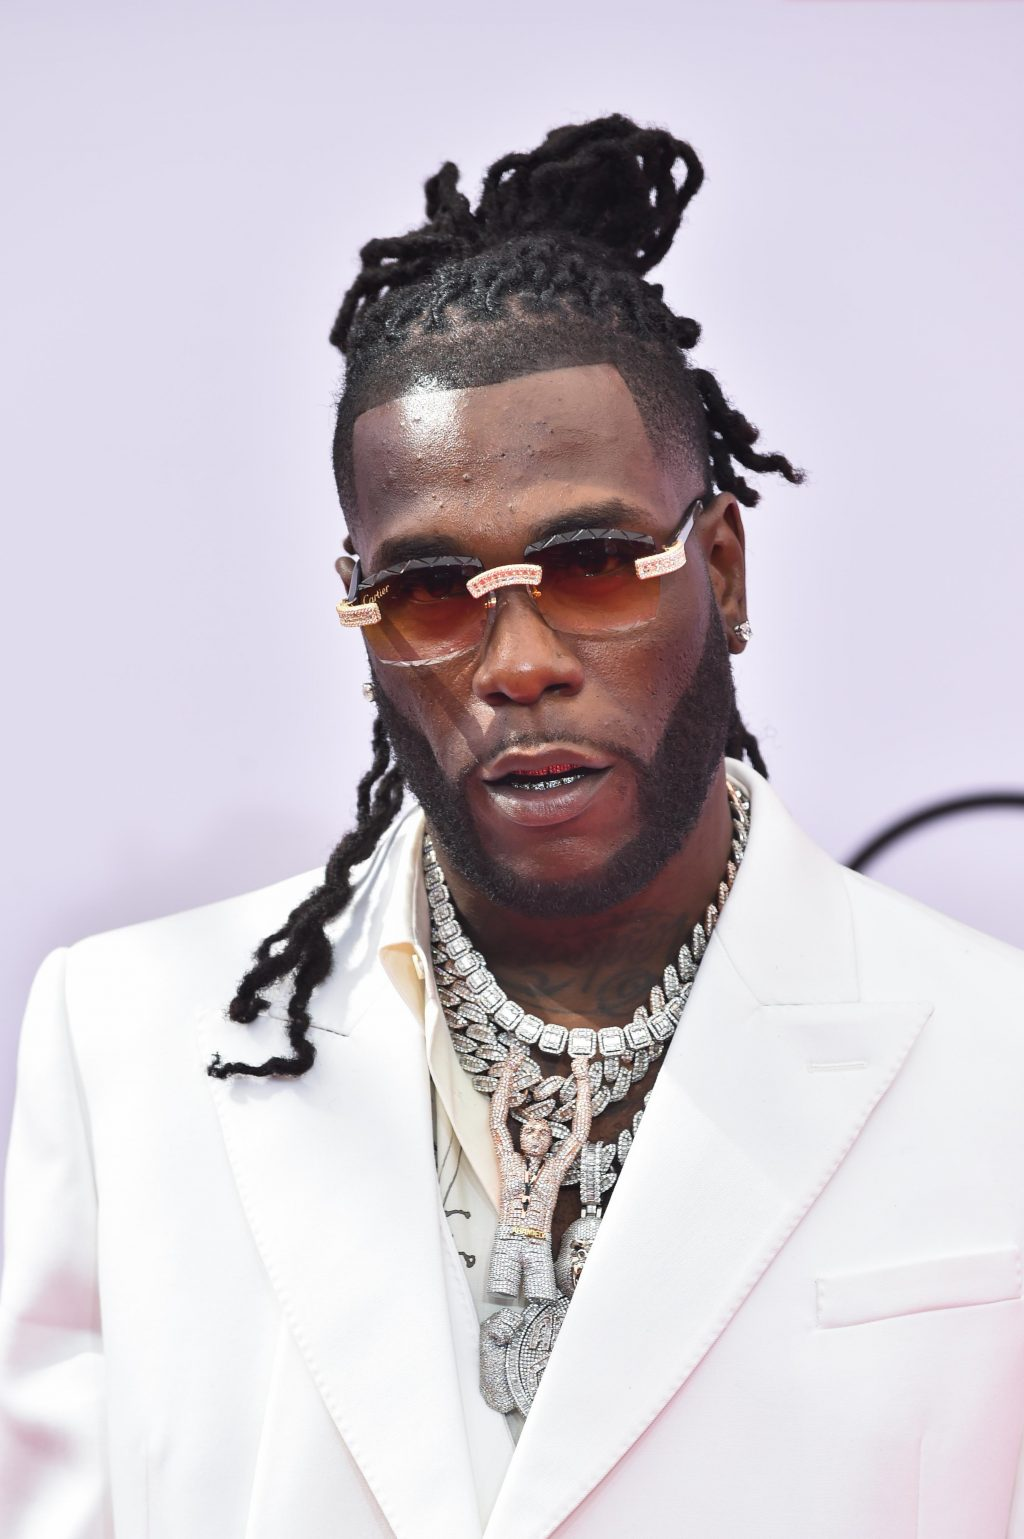 African Giant, Burna Boy purchases a piece of expensive an-all diamond jewellery worth thousands of dollars